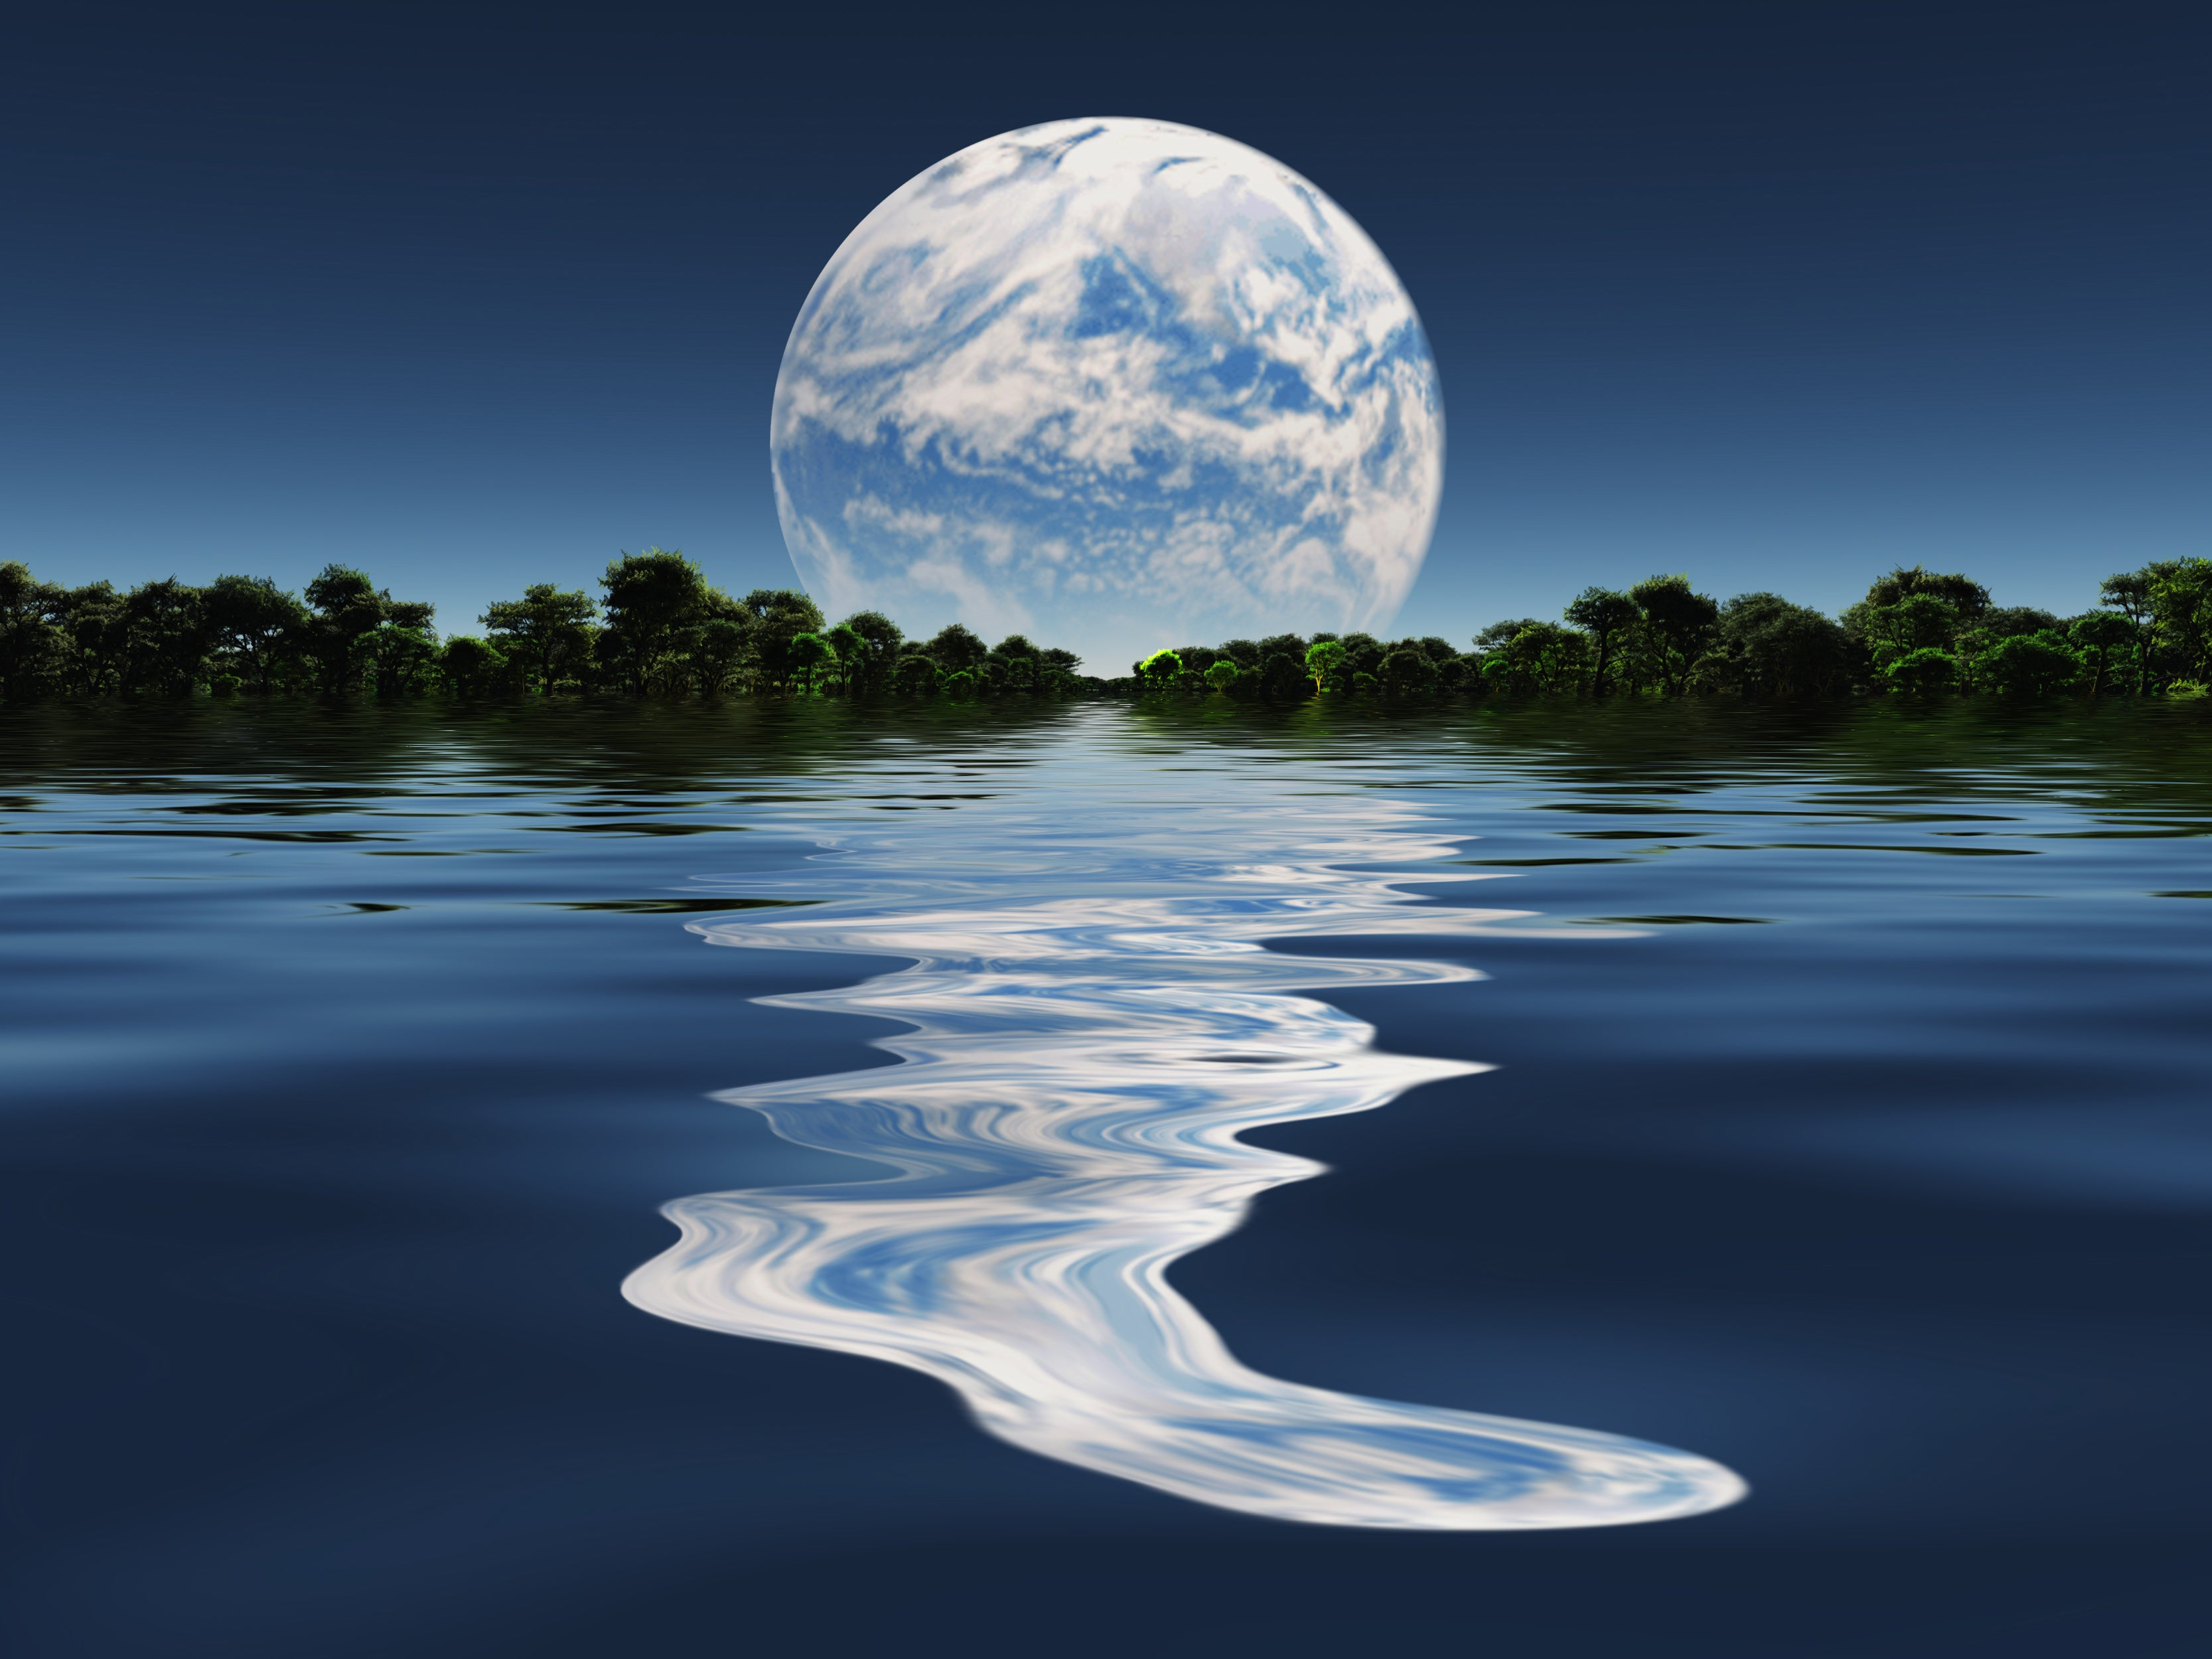 water on the moon - photo #9